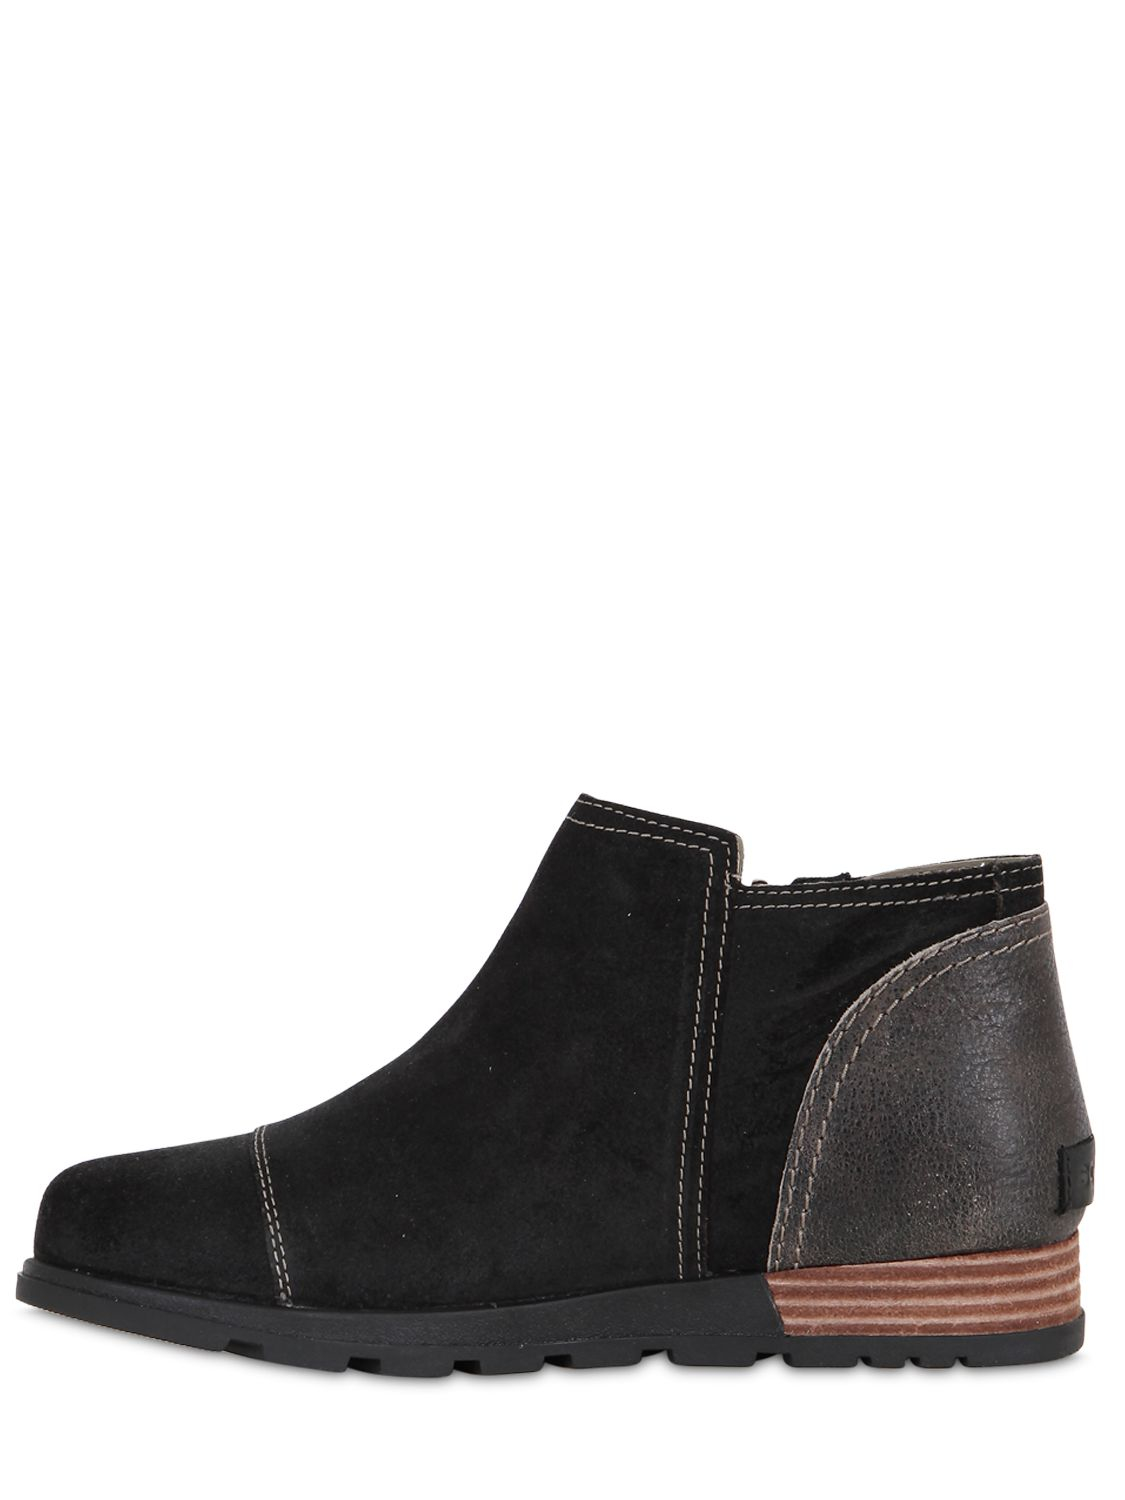 Premium Suede Ankle Boots in Black